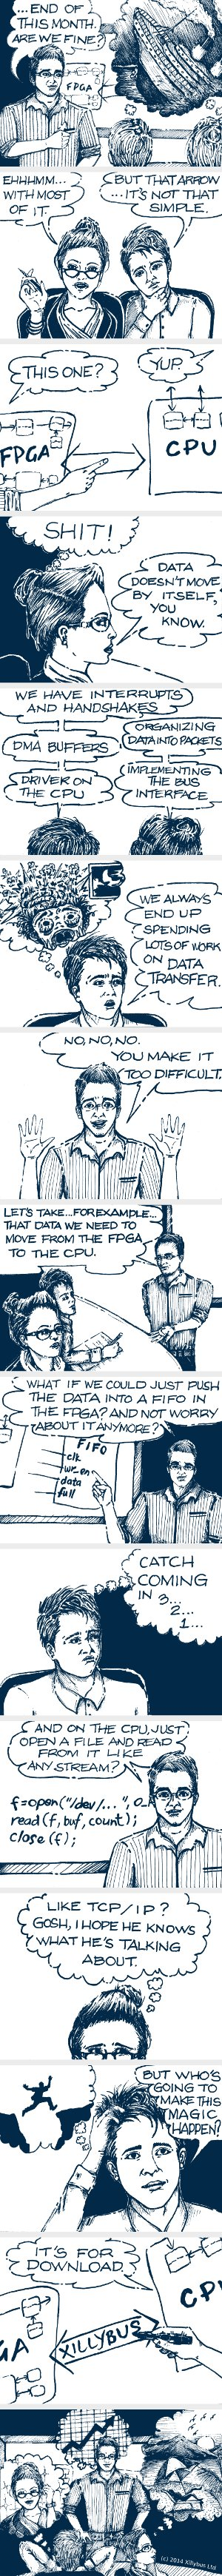 FPGA/CPU data transfer comic strip